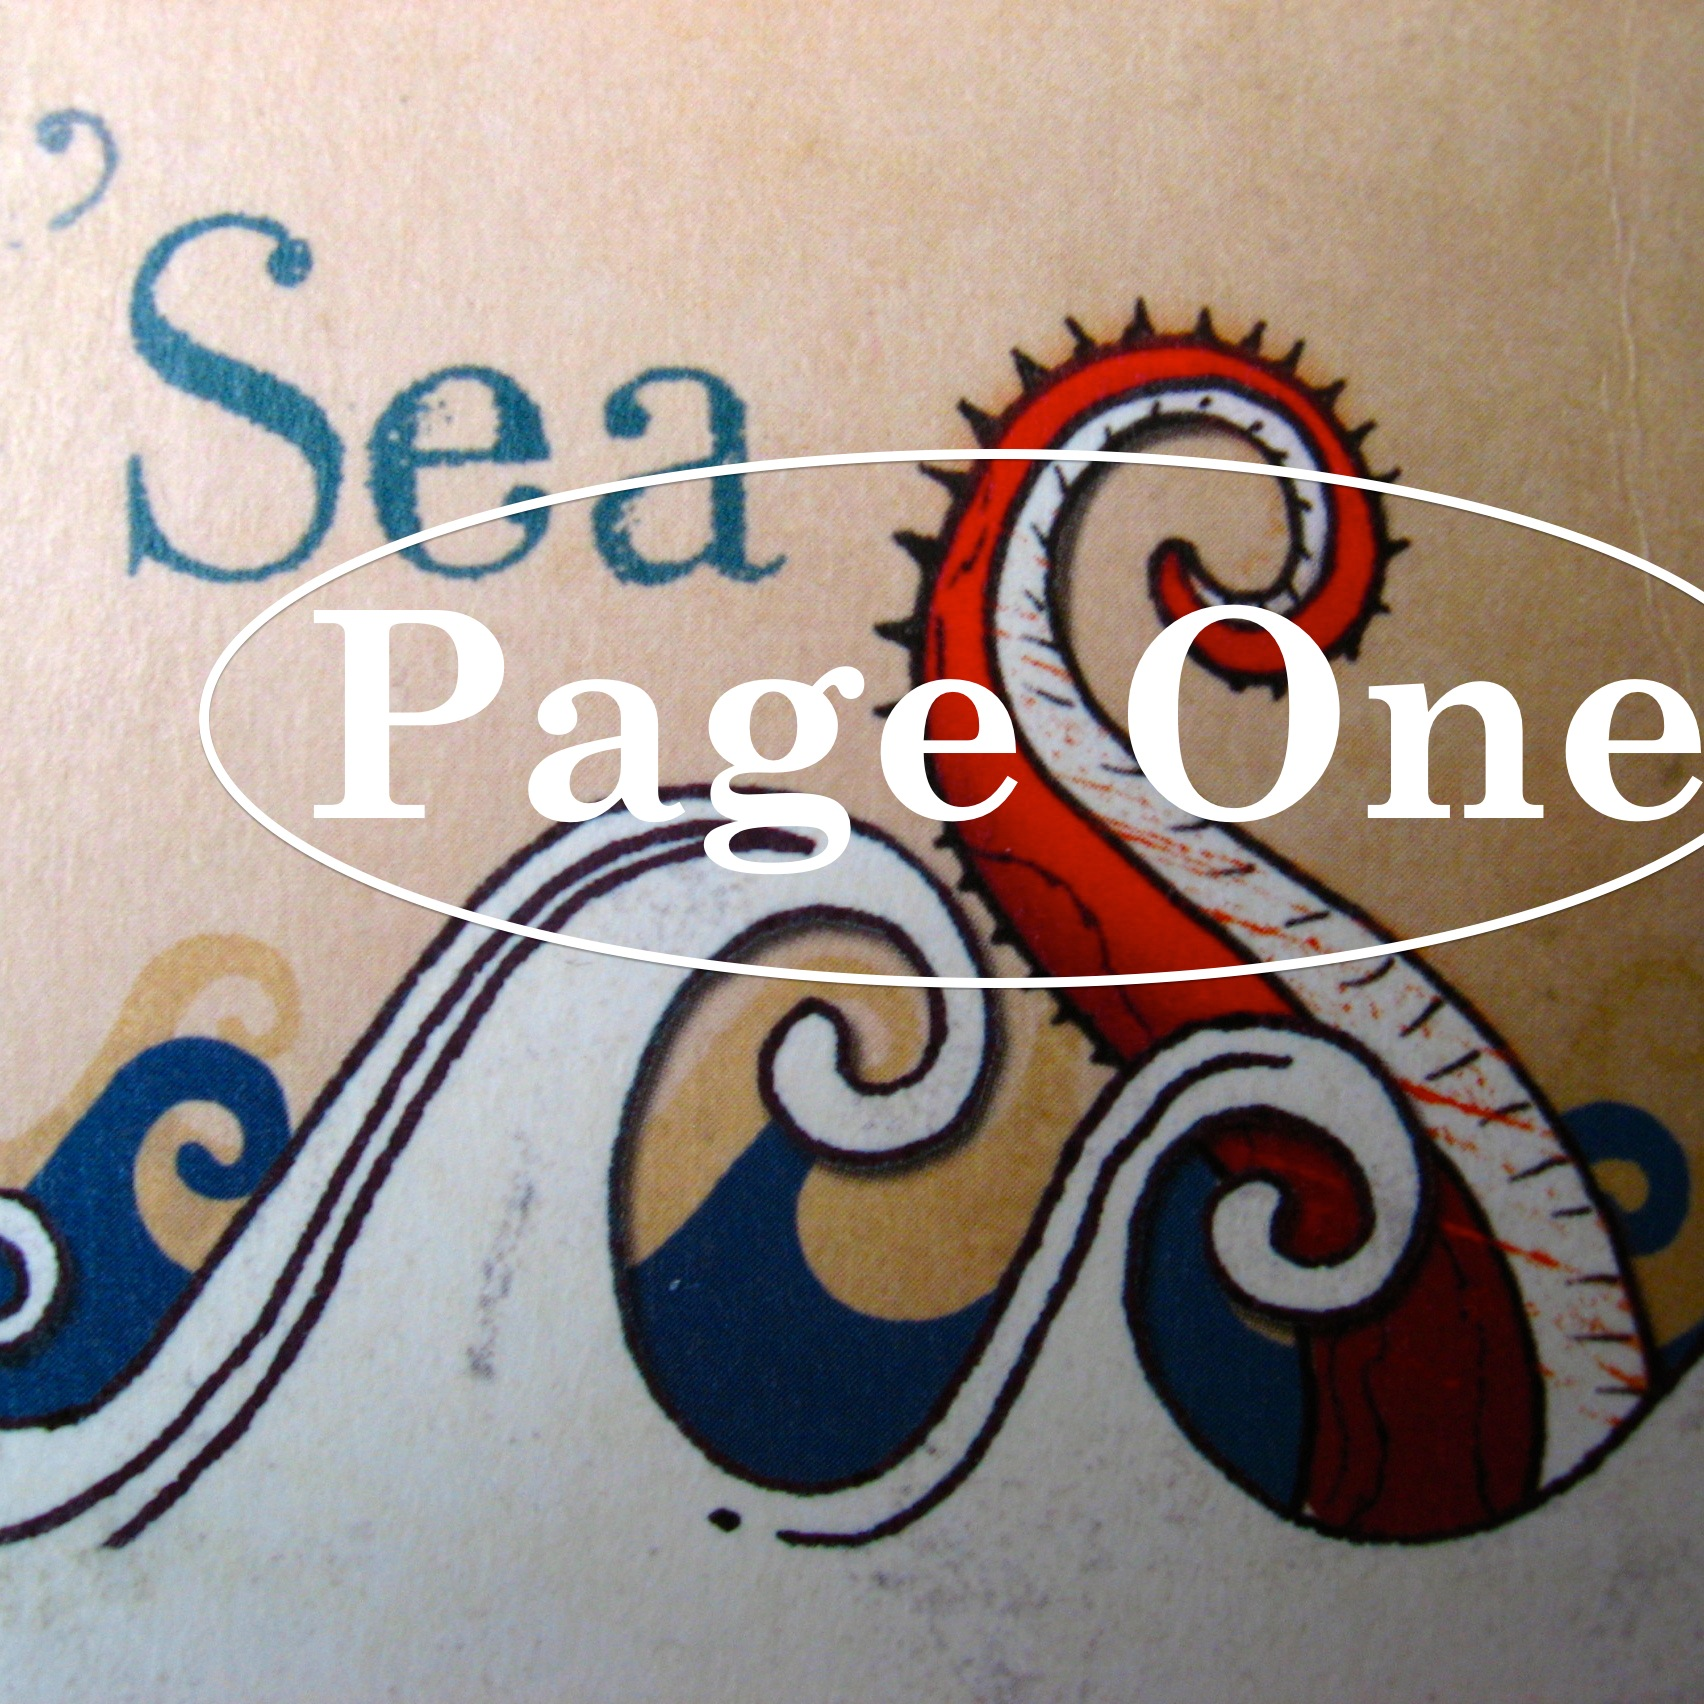 Episode image is a detail from the cover of  The Sea, The Sea  by Iris Murdoch, published in 2009 by Vintage.